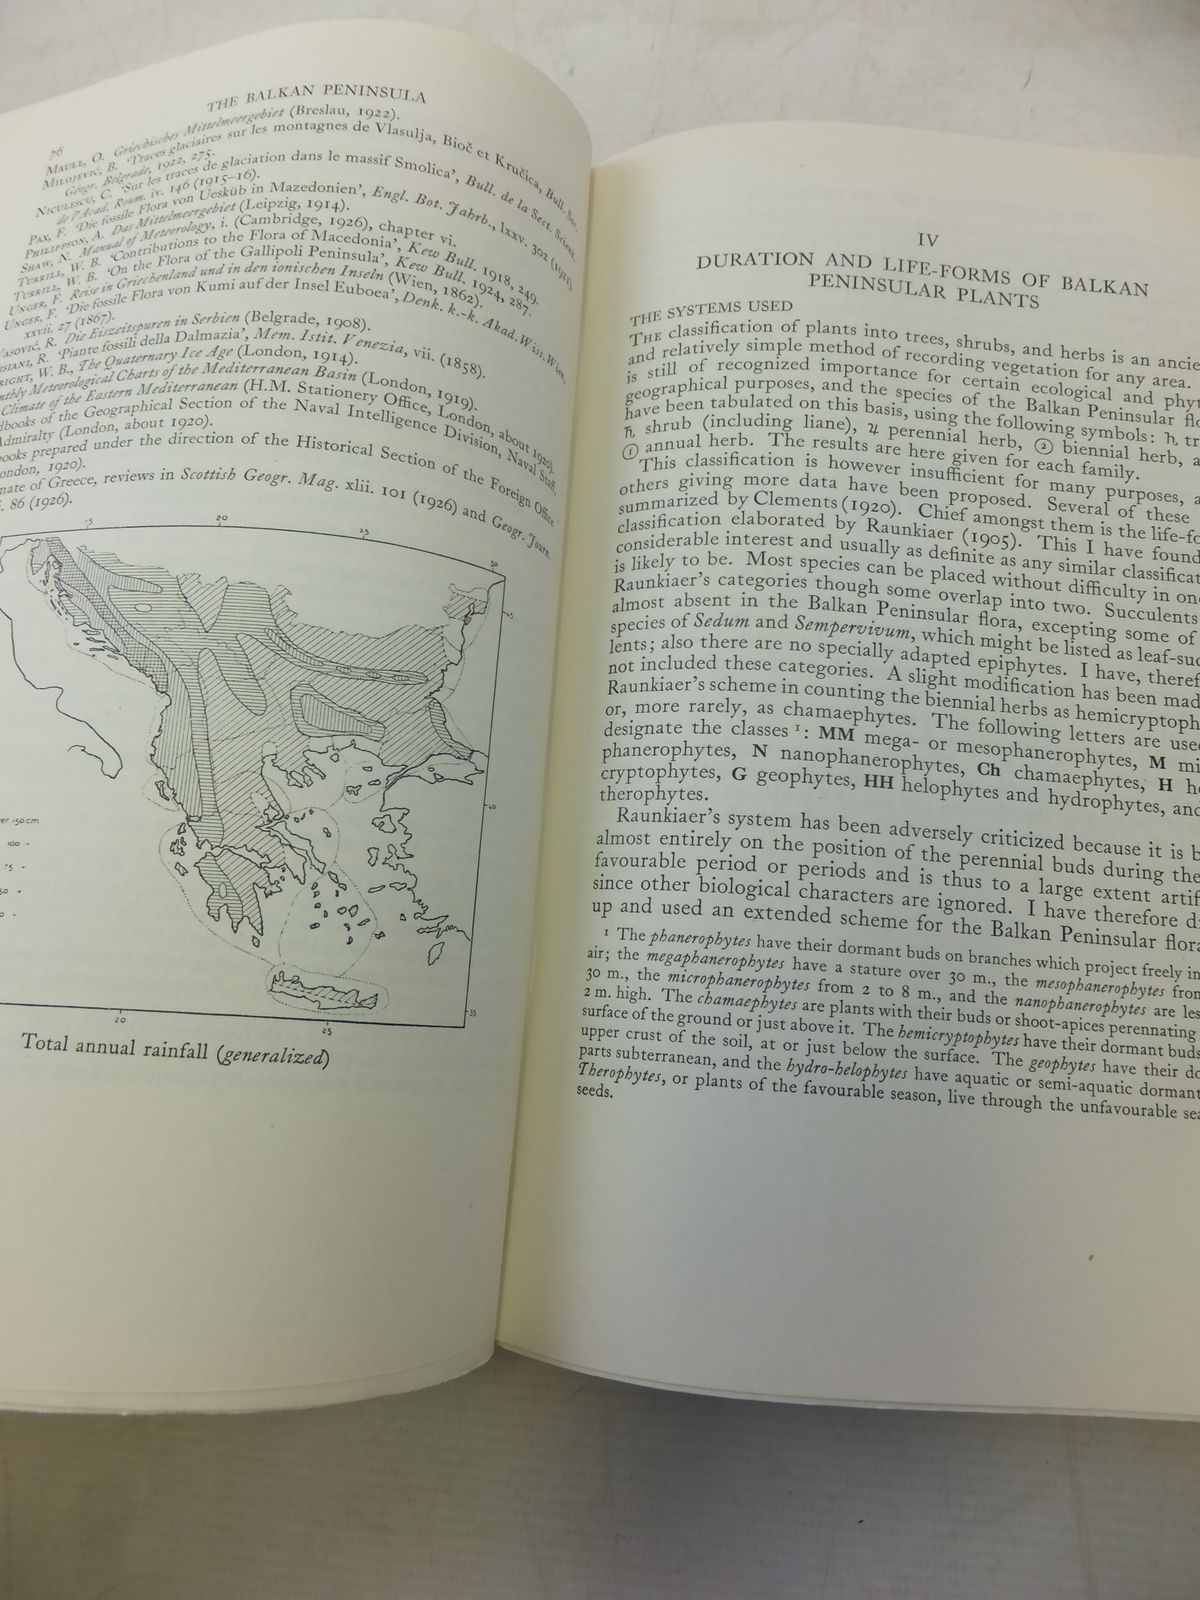 Photo of THE PLANT-LIFE OF THE BALKAN PENINSULA A PHYTOGEOGRAPHICAL STUDY written by Turrill, W.B. published by Oxford at the Clarendon Press (STOCK CODE: 1809254)  for sale by Stella & Rose's Books